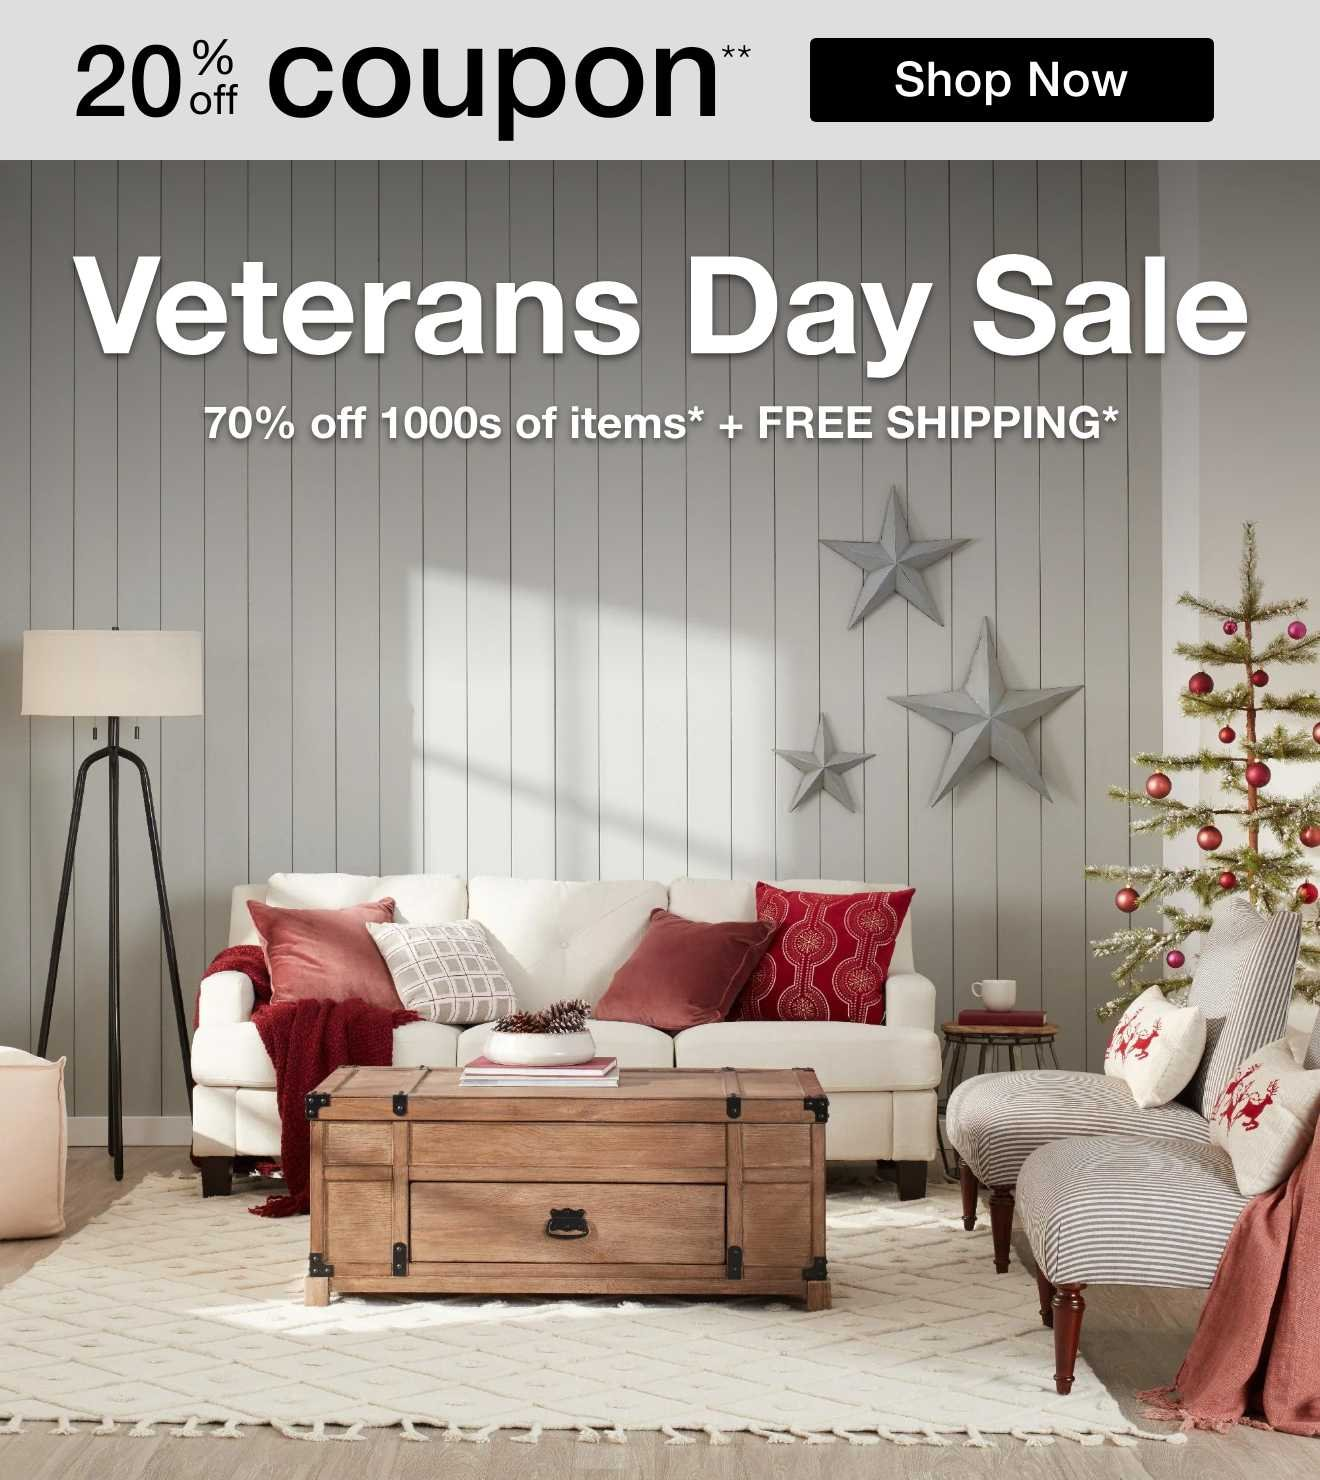 Veterans Day Sale, 70% off 1000s of items* + FREE SHIPPING*